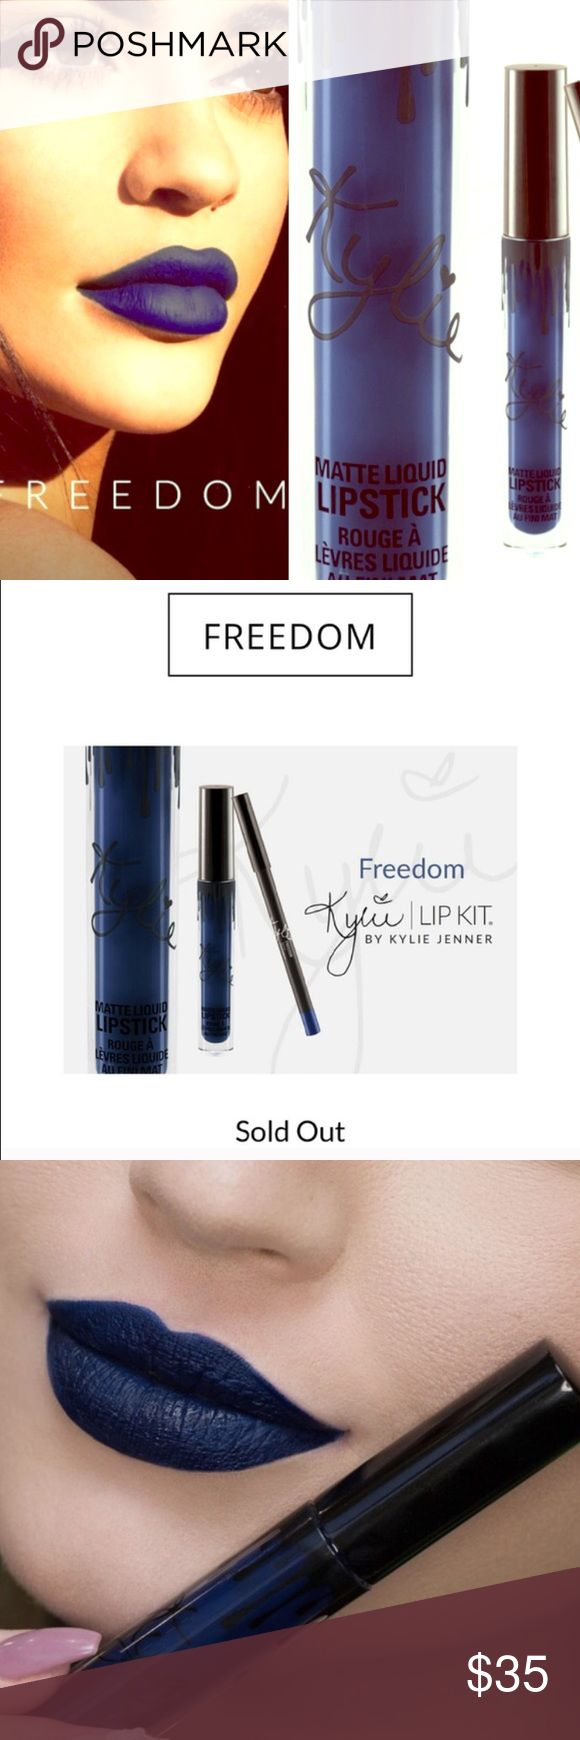 Kylie Jenner Freedom limited edition lip kit Only used to swatch. Limited edition for the 4th of July this year, sold out on site. Purchase would include the liner, gloss, and the small individual box. I'm using it to hold my other Kylie kits rn, but I'd sell the large shipping box as well for $5 extra if anyone was interested. Would make a cute Christmas gift 😊 Kylie Cosmetics Makeup